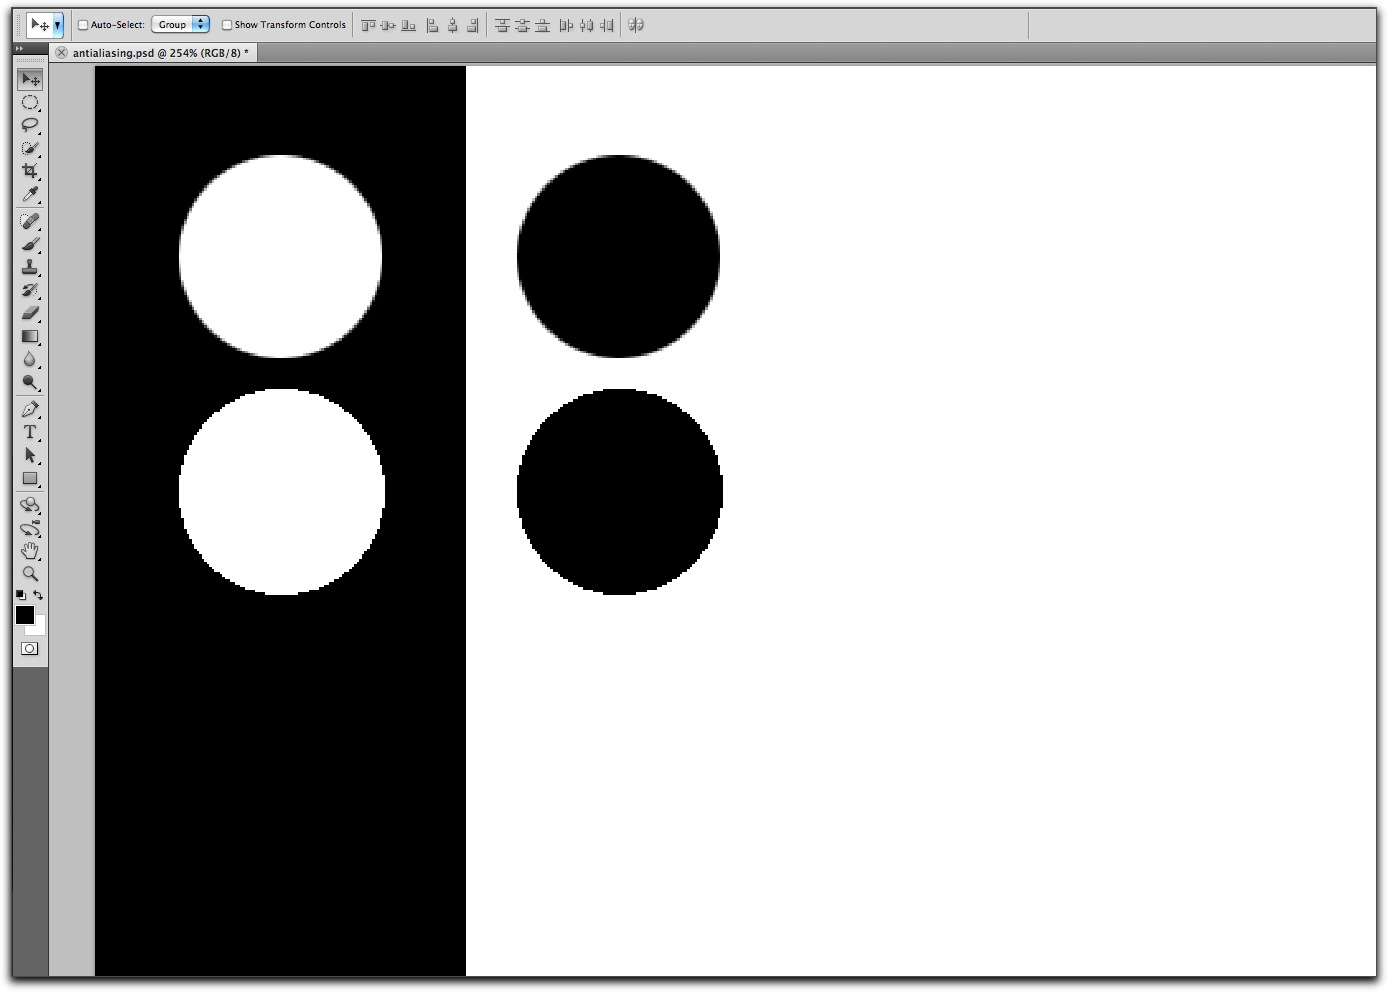 Adobe Photoshop: Top ellipse shows anti-aliasing on, the bottom one shows it turned off,